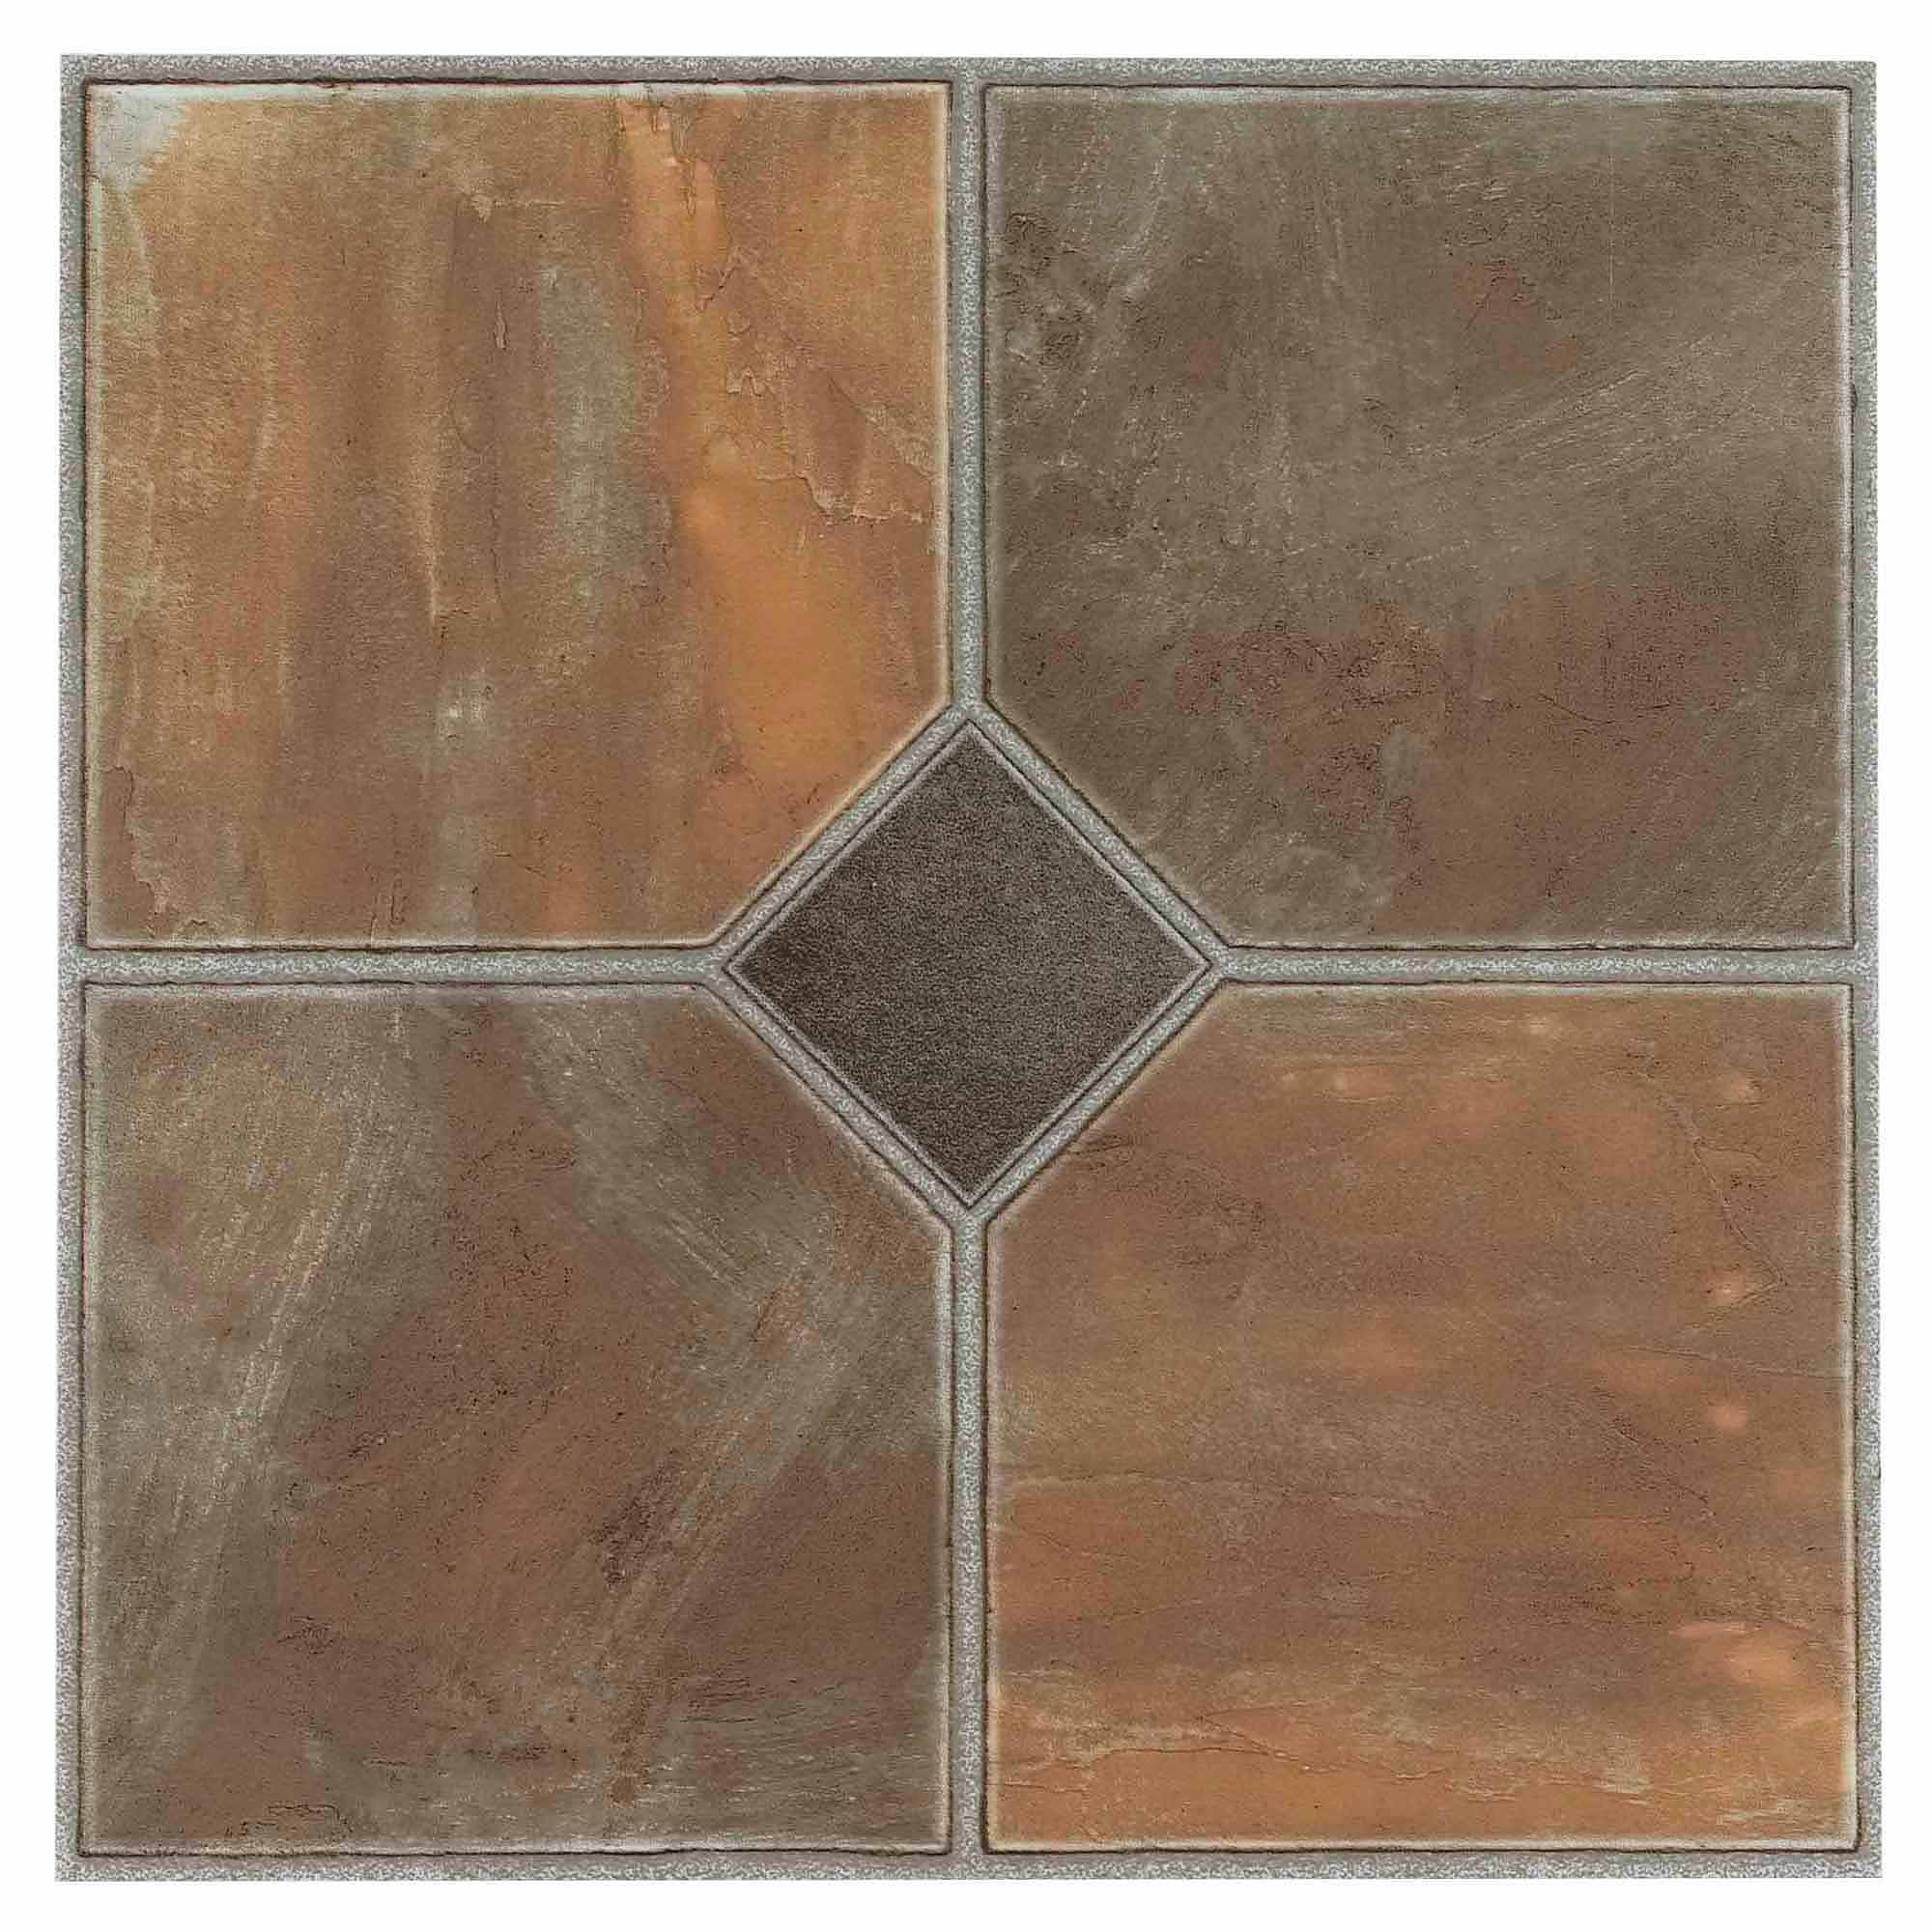 NEXUS Rustic Slate 12x12 Self Adhesive Vinyl Floor Tile - 20 Tiles/20 Sq.Ft.